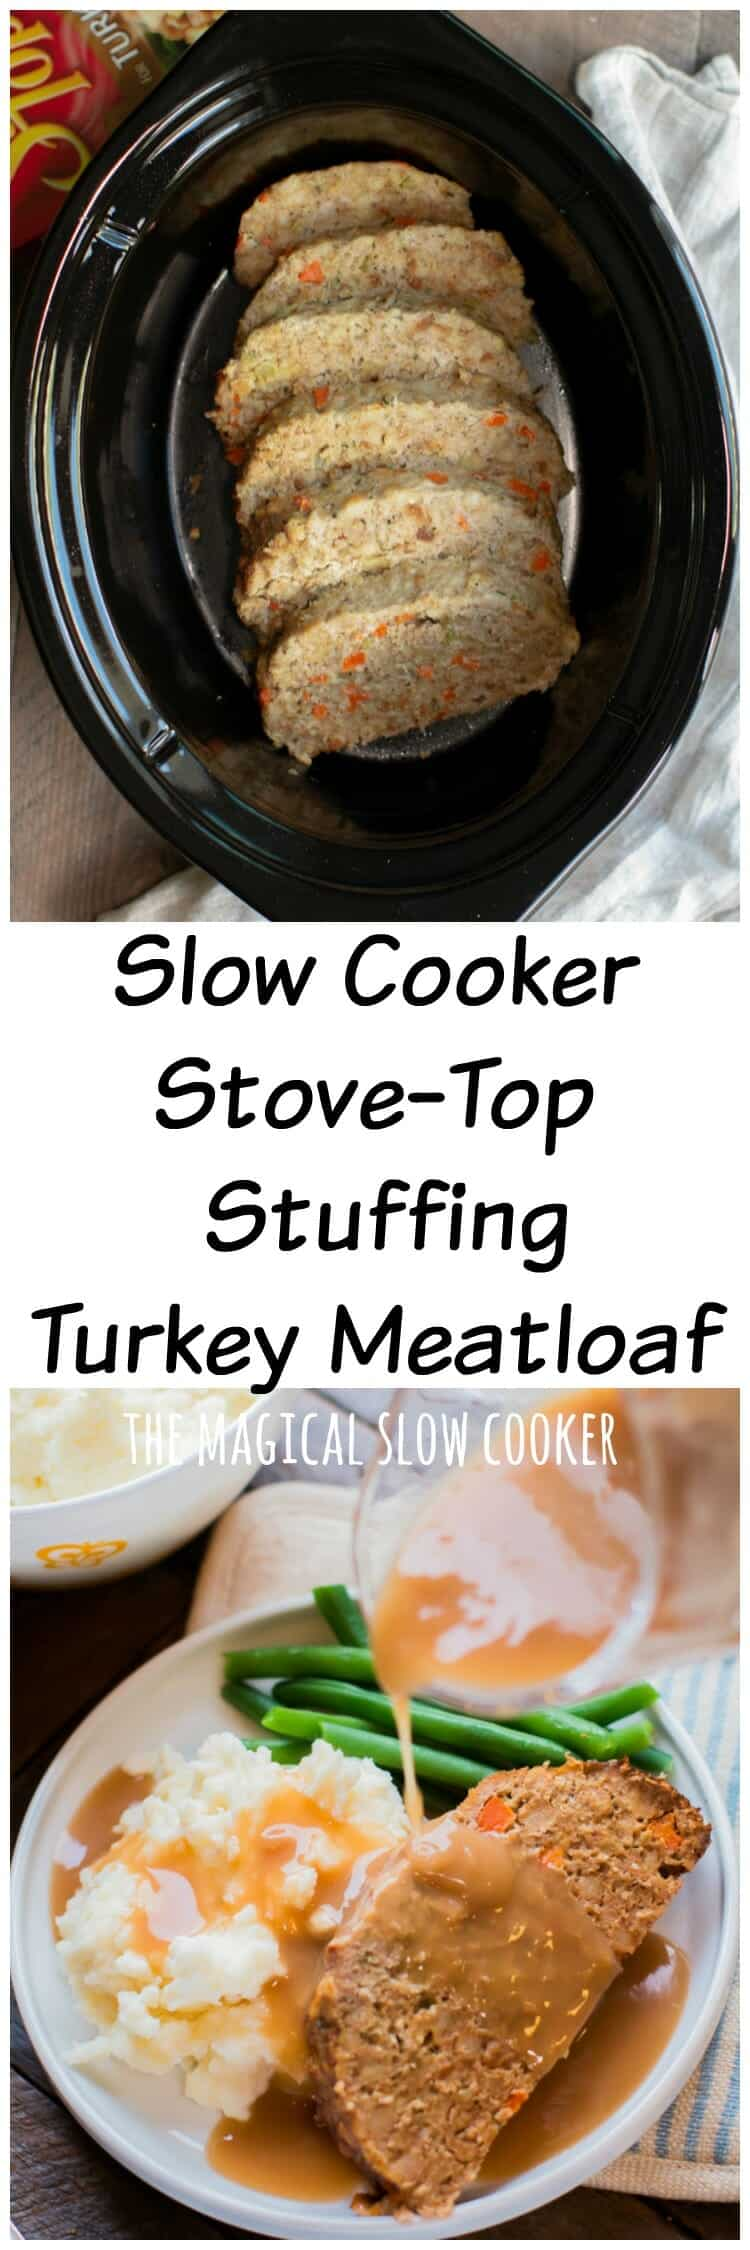 Slow Cooker Stove-Top Stuffing Meatloaf